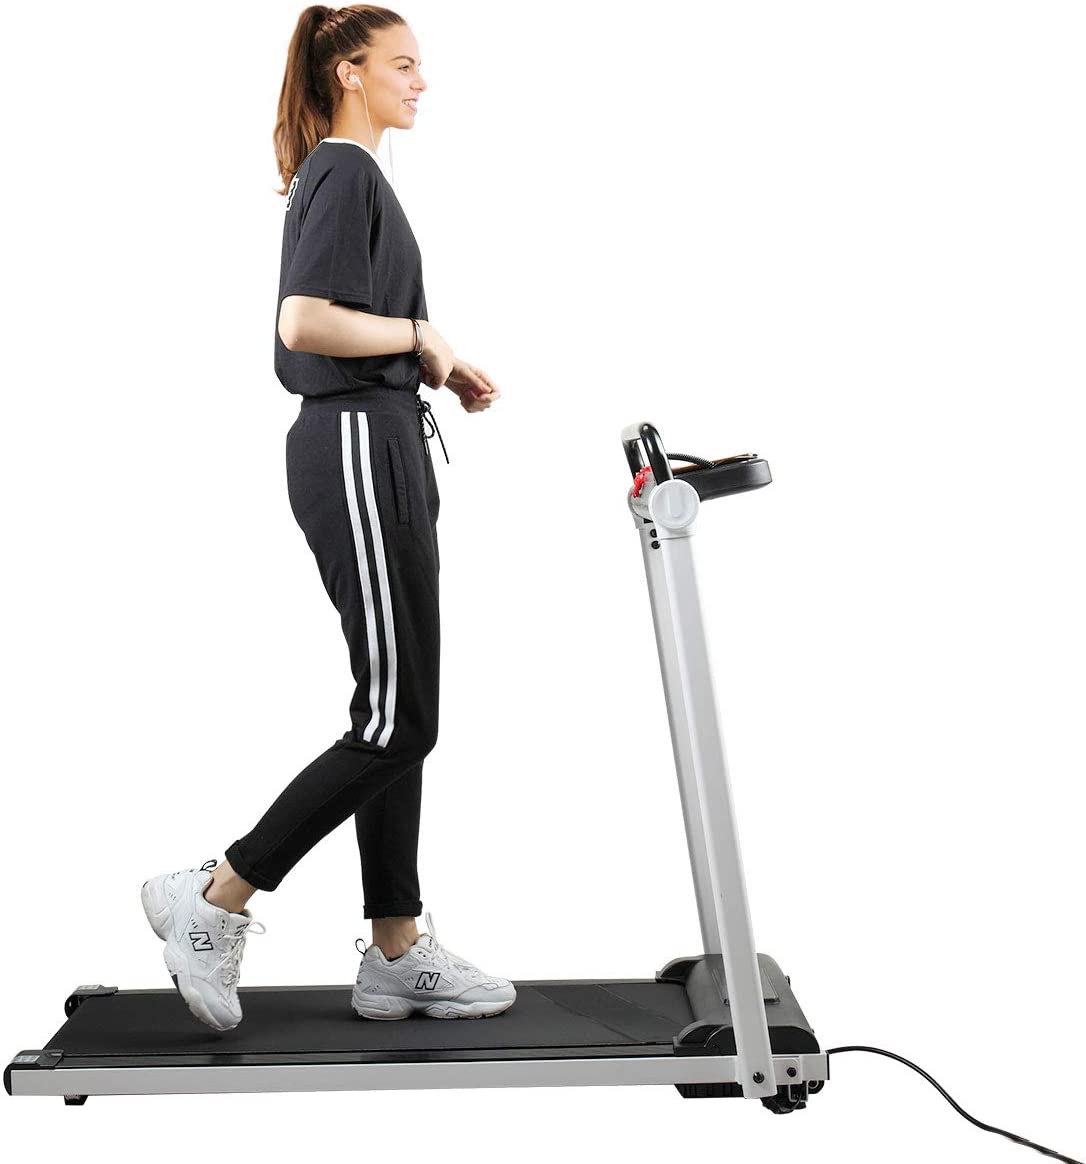 JAXPETY Electric Folding Treadmill 2HP Fitness Motorized Running Jogging Machine Perfect for Home Office Gym with Large LED Display, 12 Preset Programs, Black